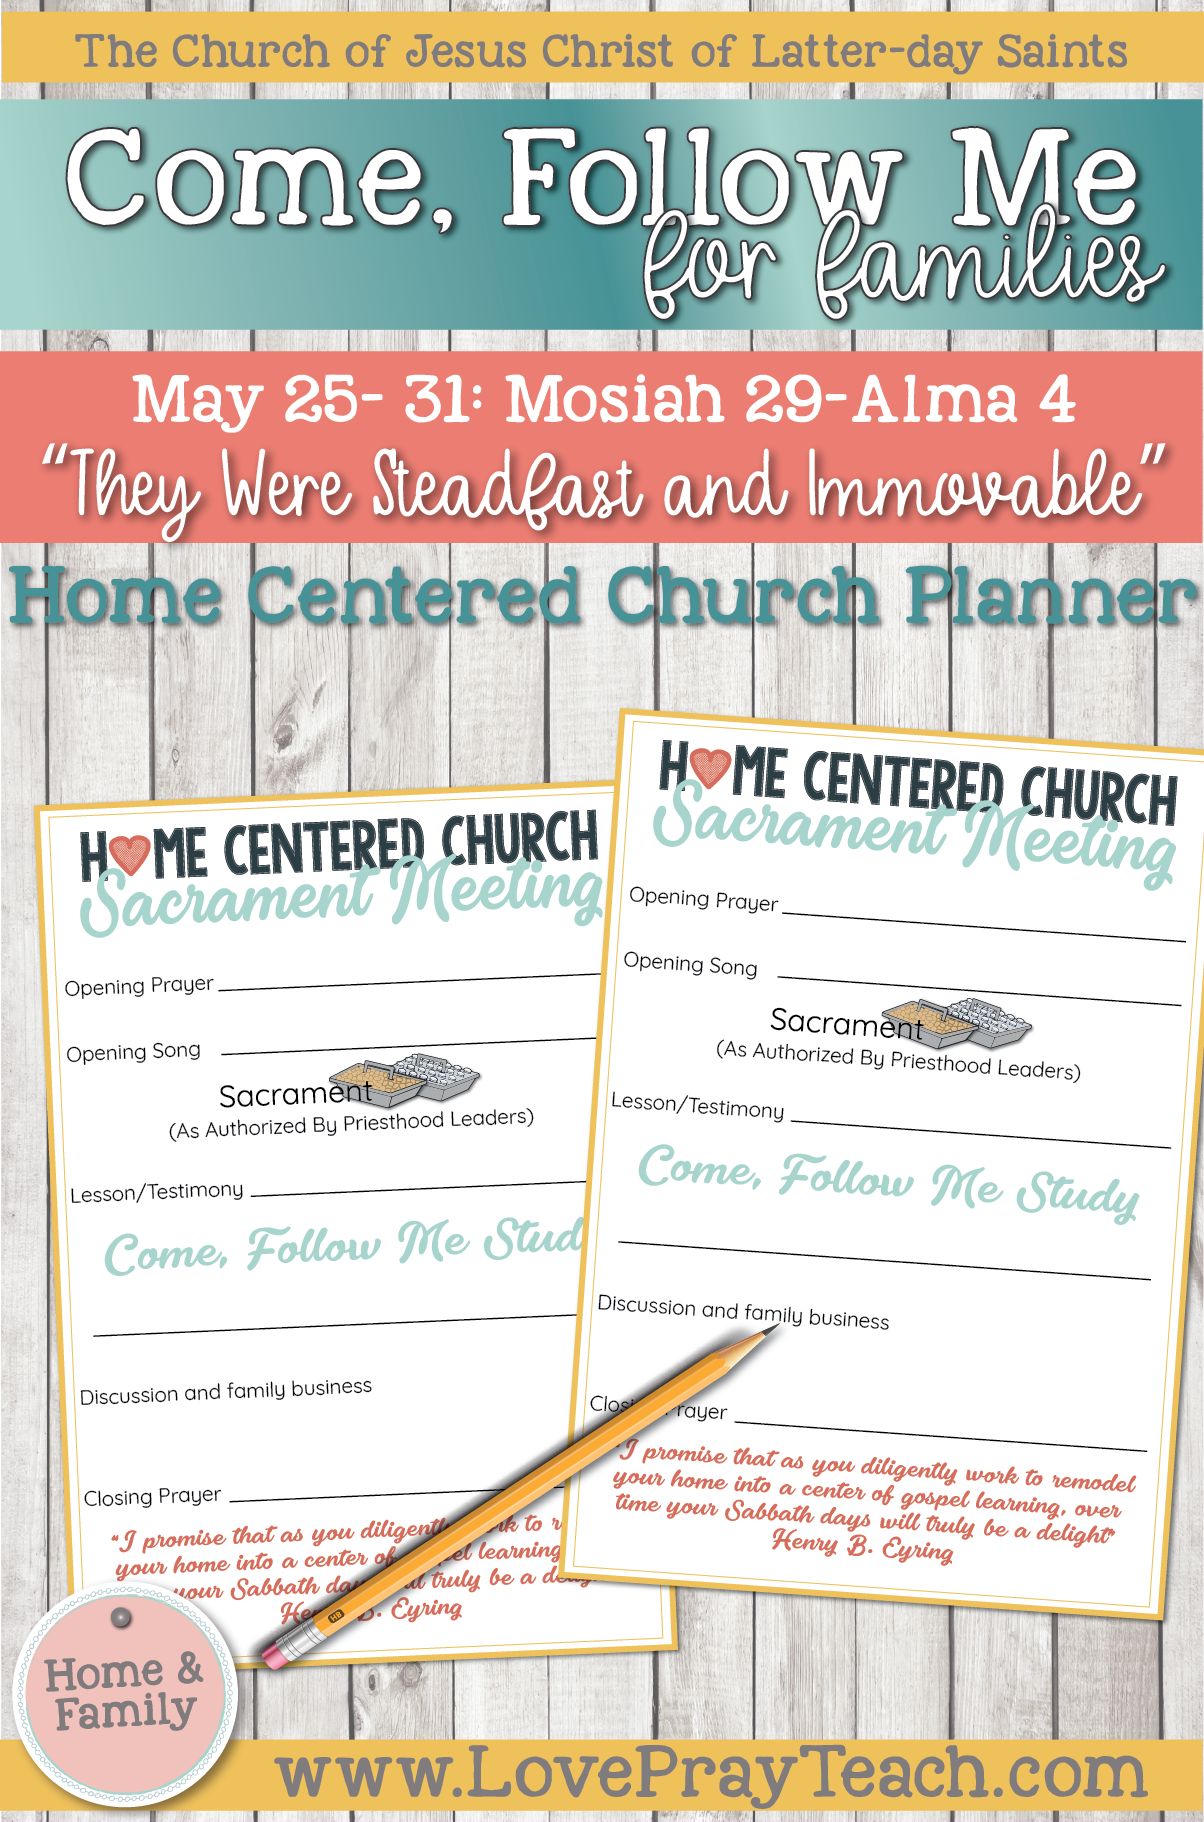 """Come, Follow Me—For Individuals and Families: Book of Mormon 2020 -May Week 5 -May 25– 31 Mosiah 29-Alma 4 """"They Were Steadfast and Immovable"""""""